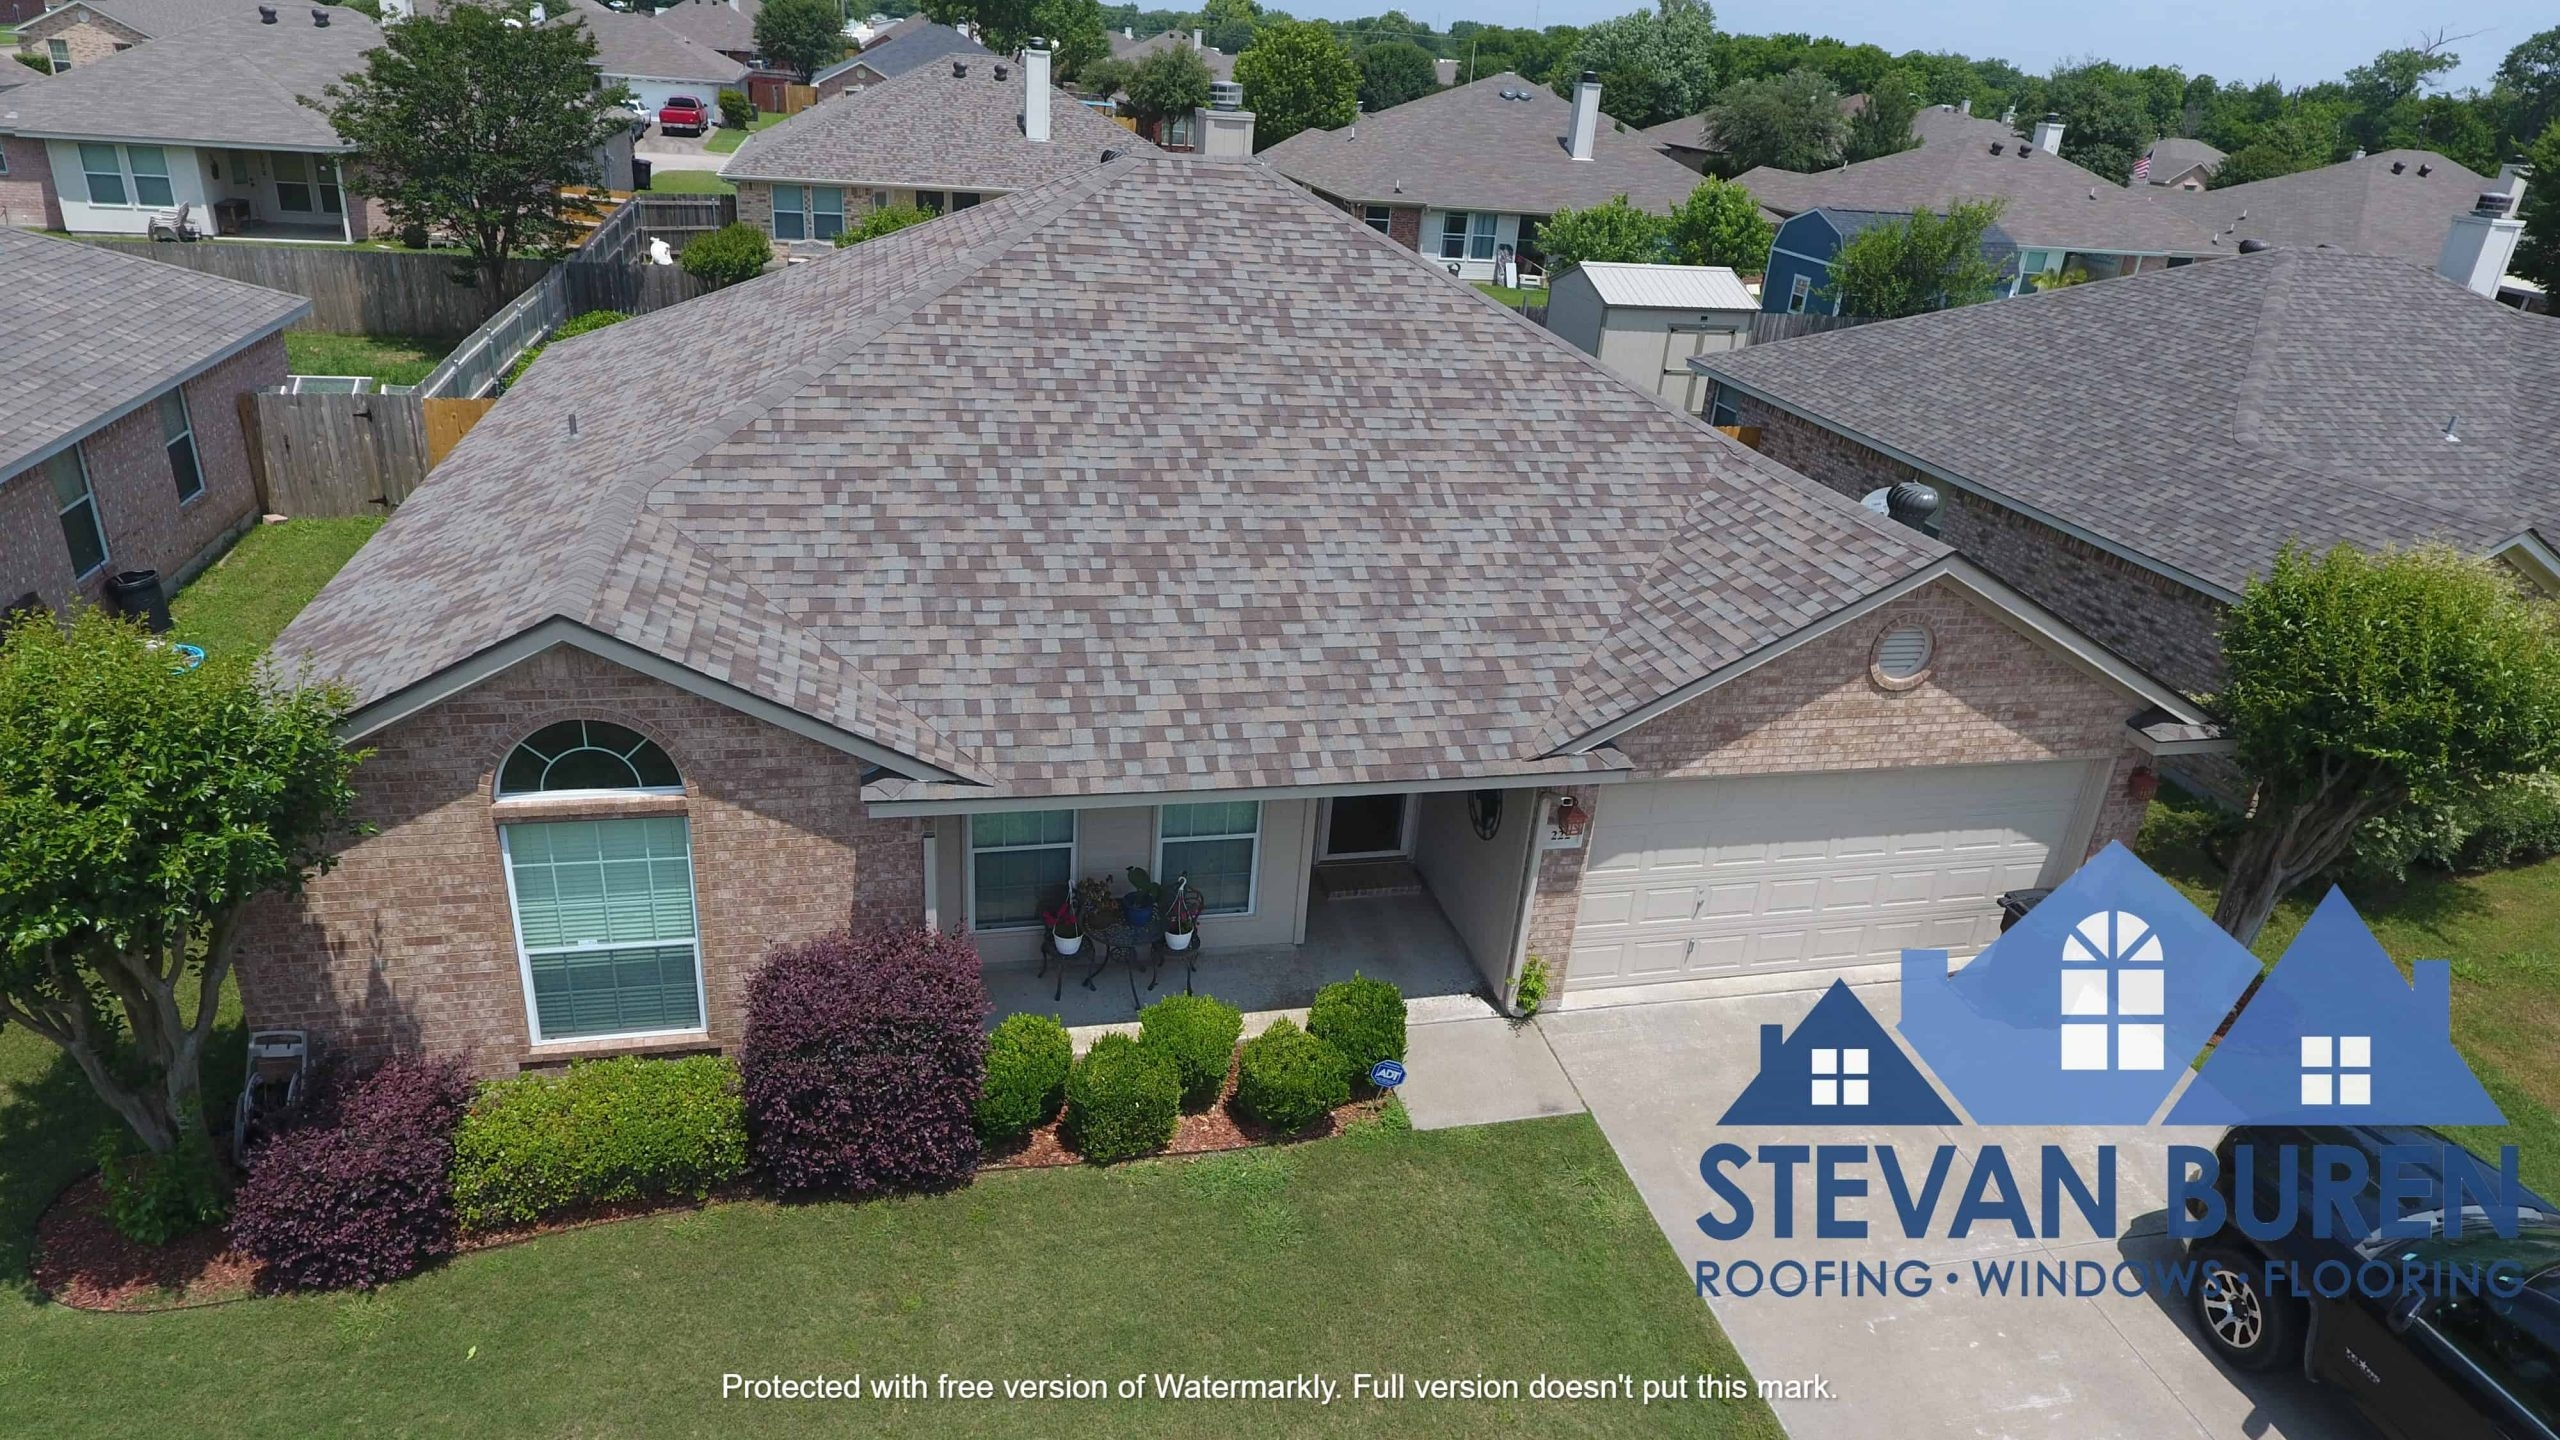 Roofing Gallery Stevan Buren Roofing Windows And Flooring